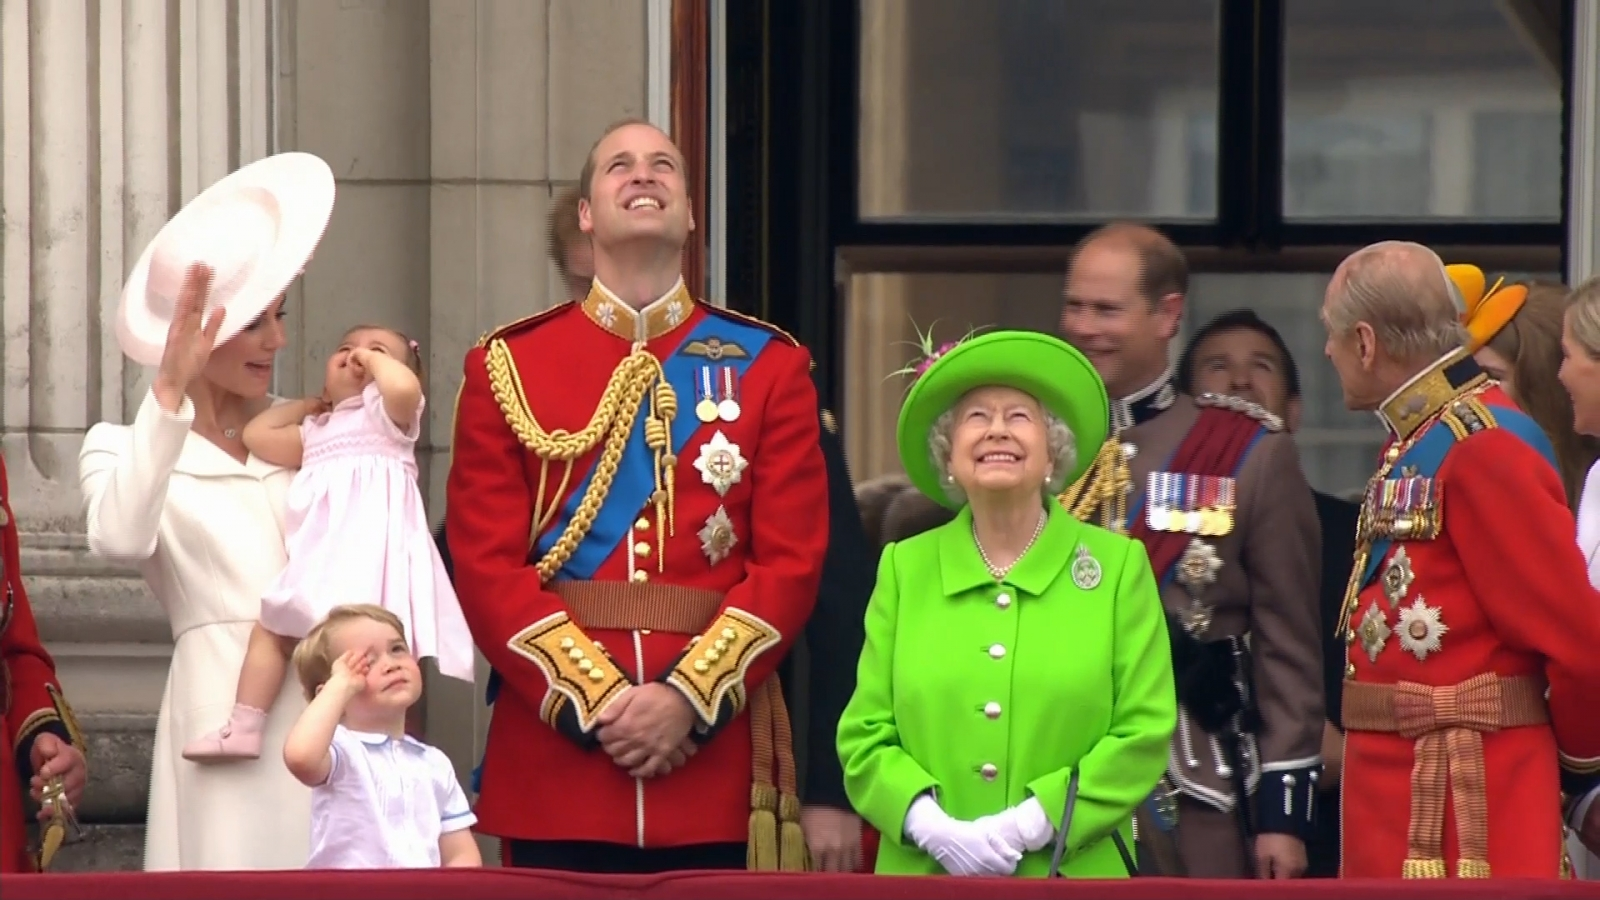 Royals watch the RAF flypast